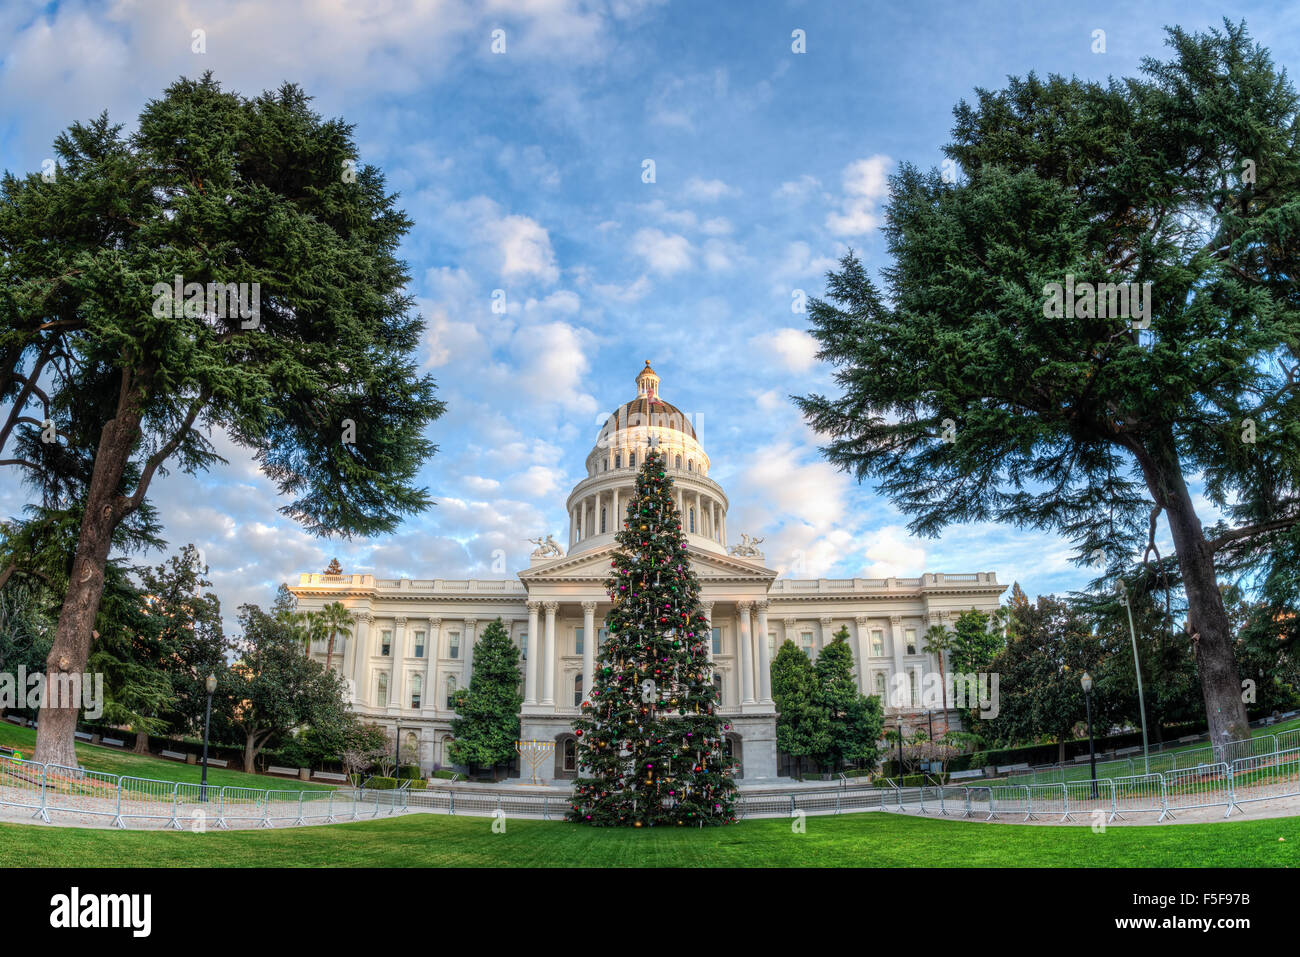 Wide angle view of the Capital Christmas tree in front of the ...